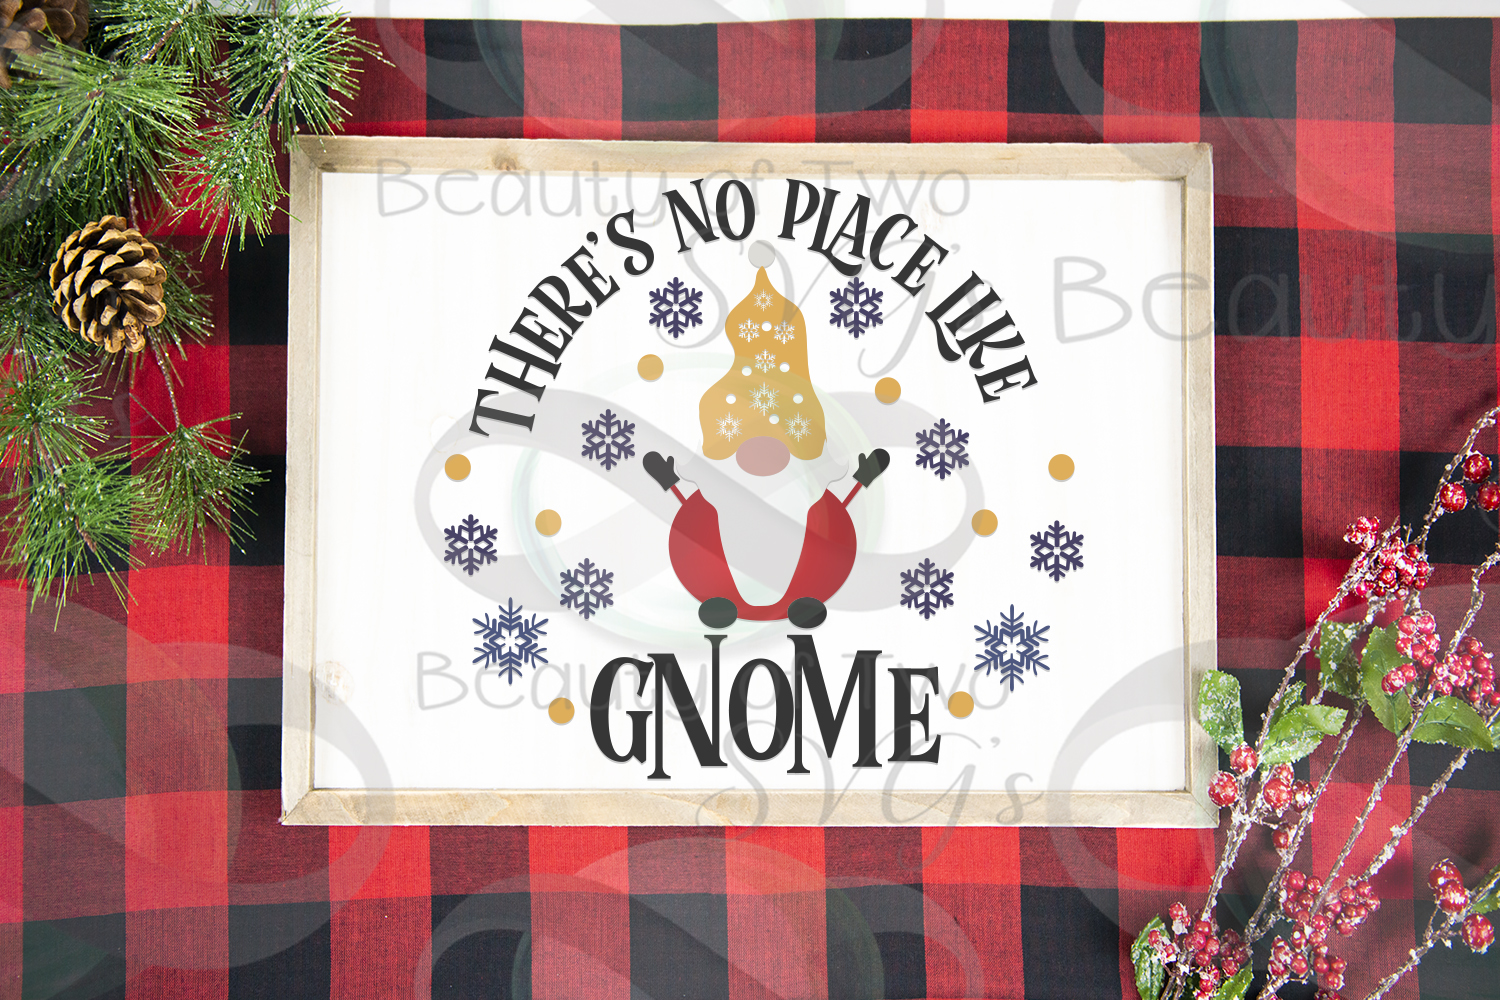 There's no place like Gnome Winter porch svg, Gnome Sign svg example image 2